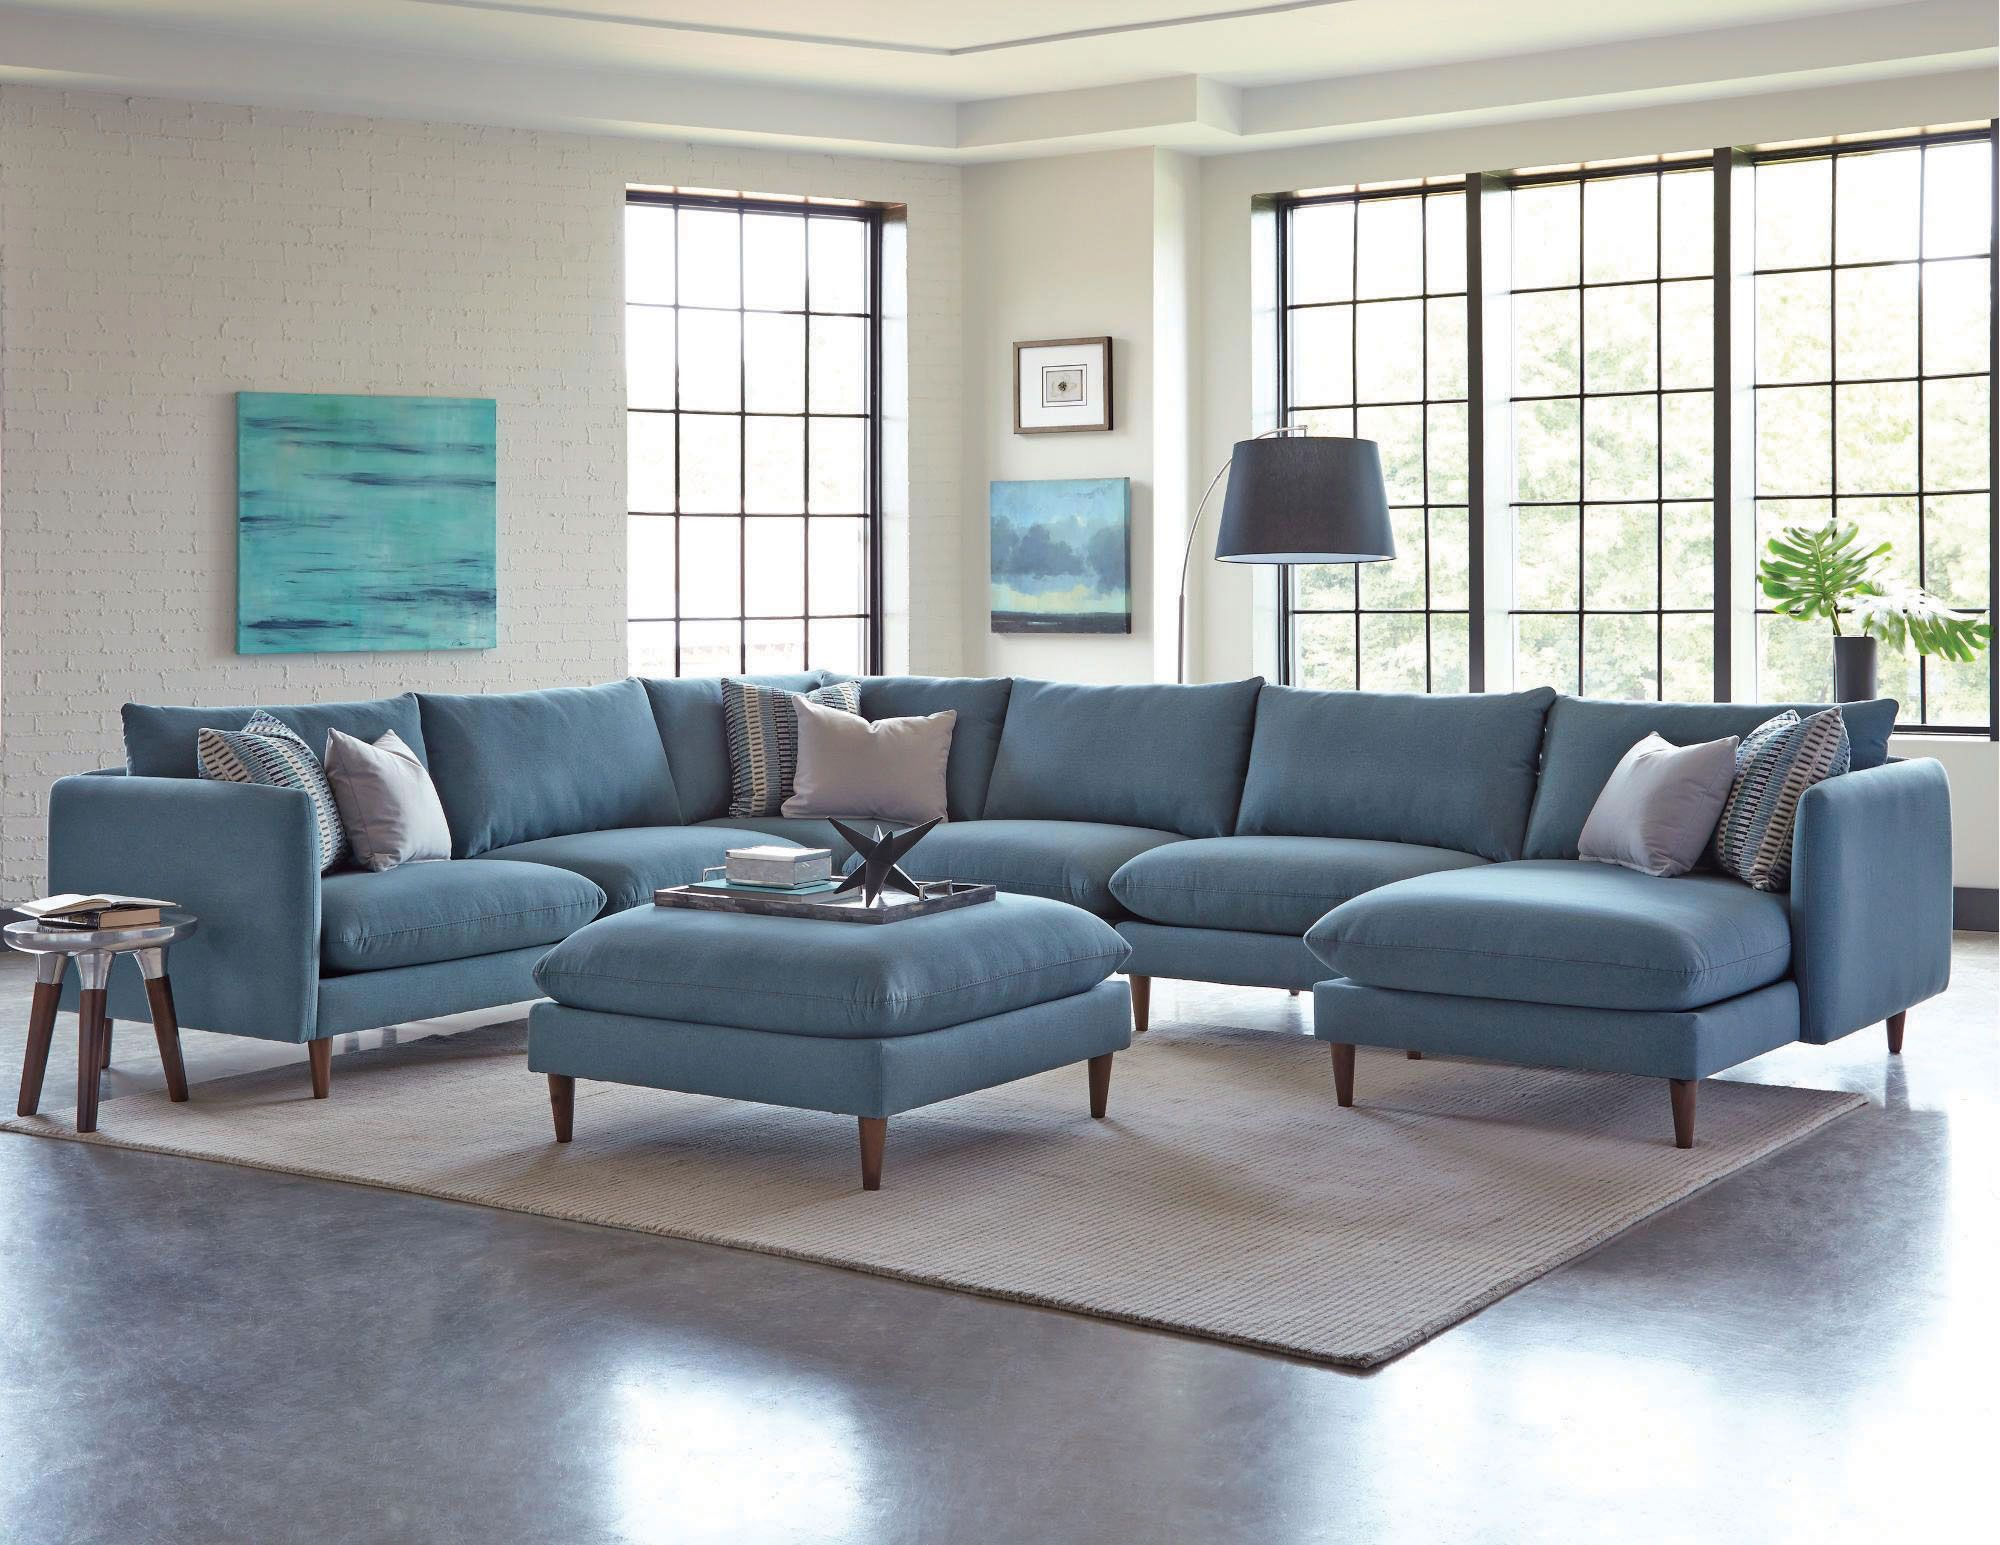 Melbourne Blue Upholstered 6 Piece Casual Modern Sectional